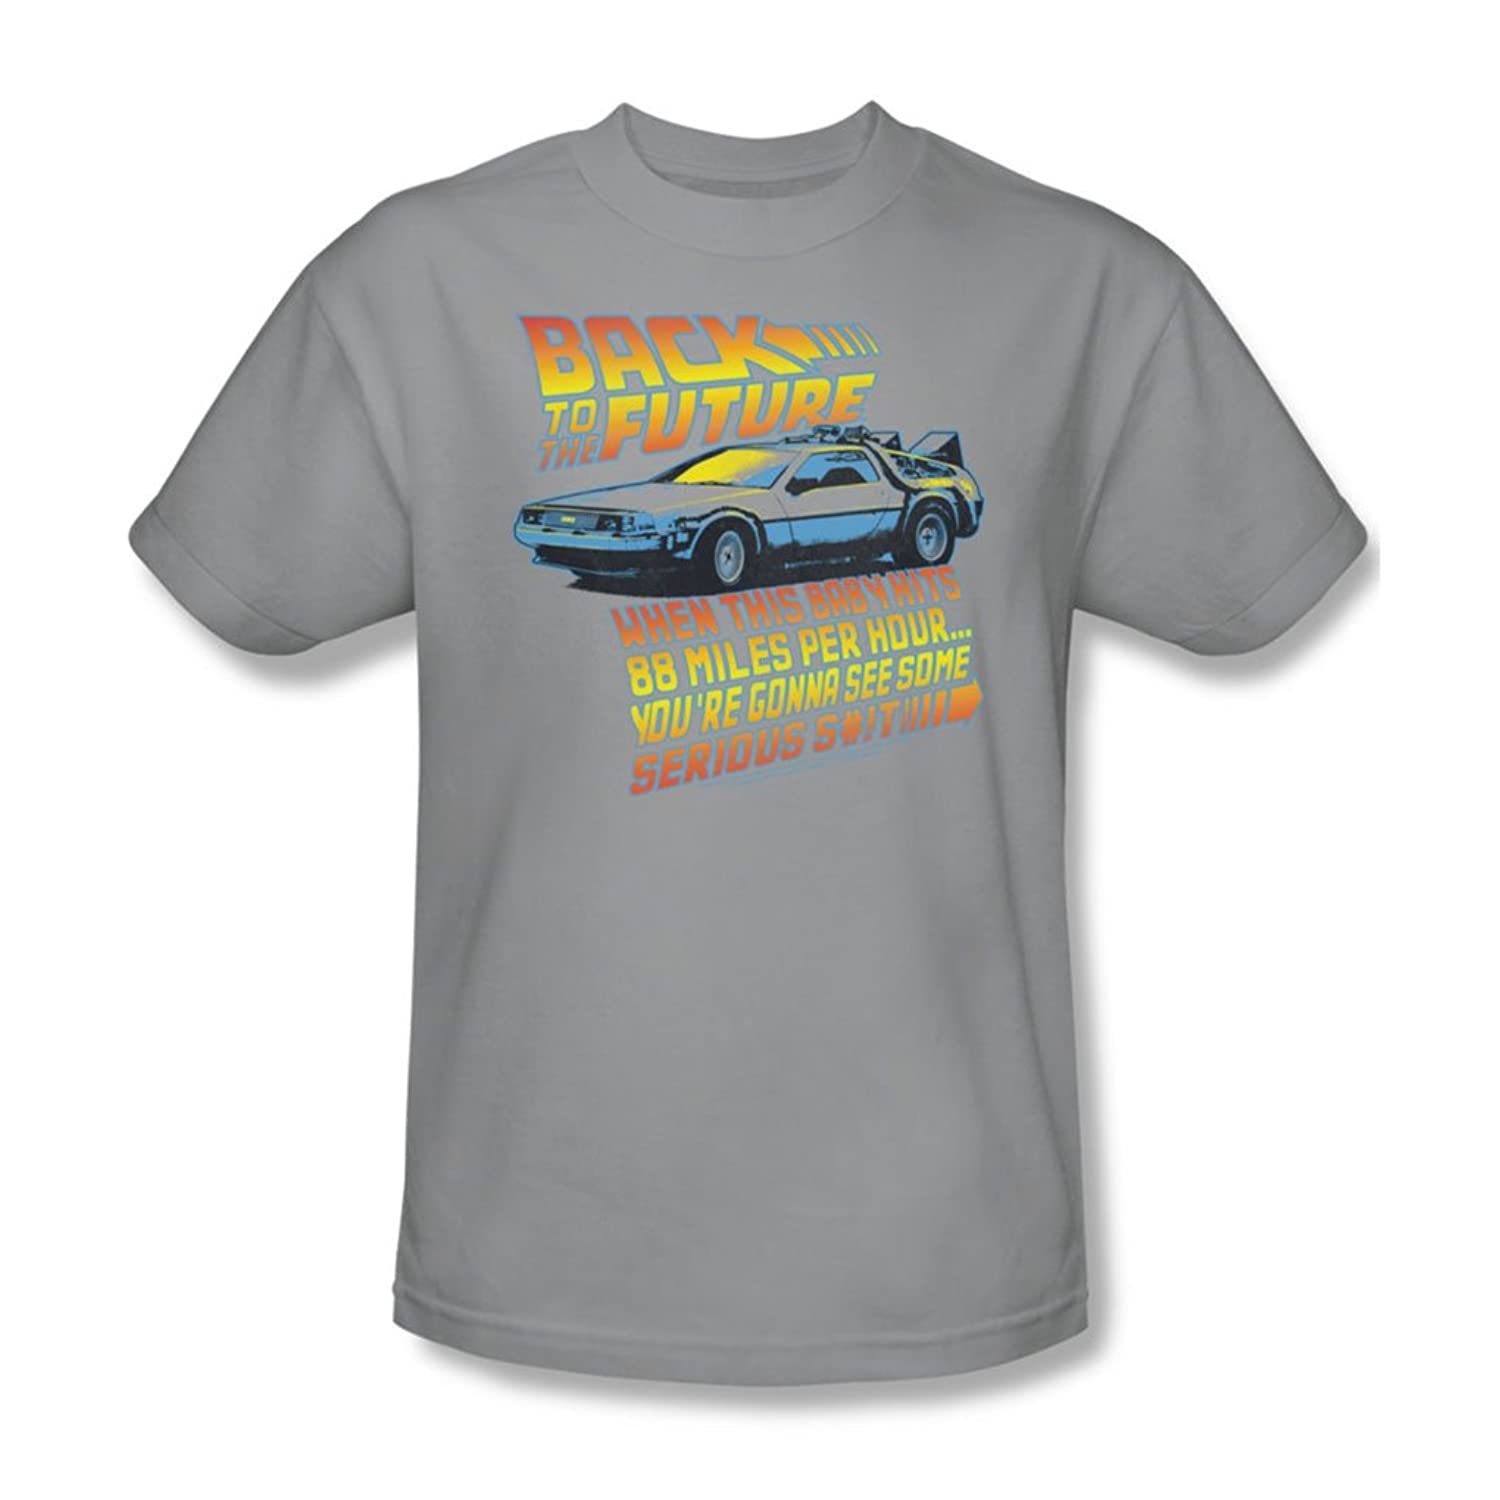 Back To The Future - Mens 88 Mph T-Shirt In Silver